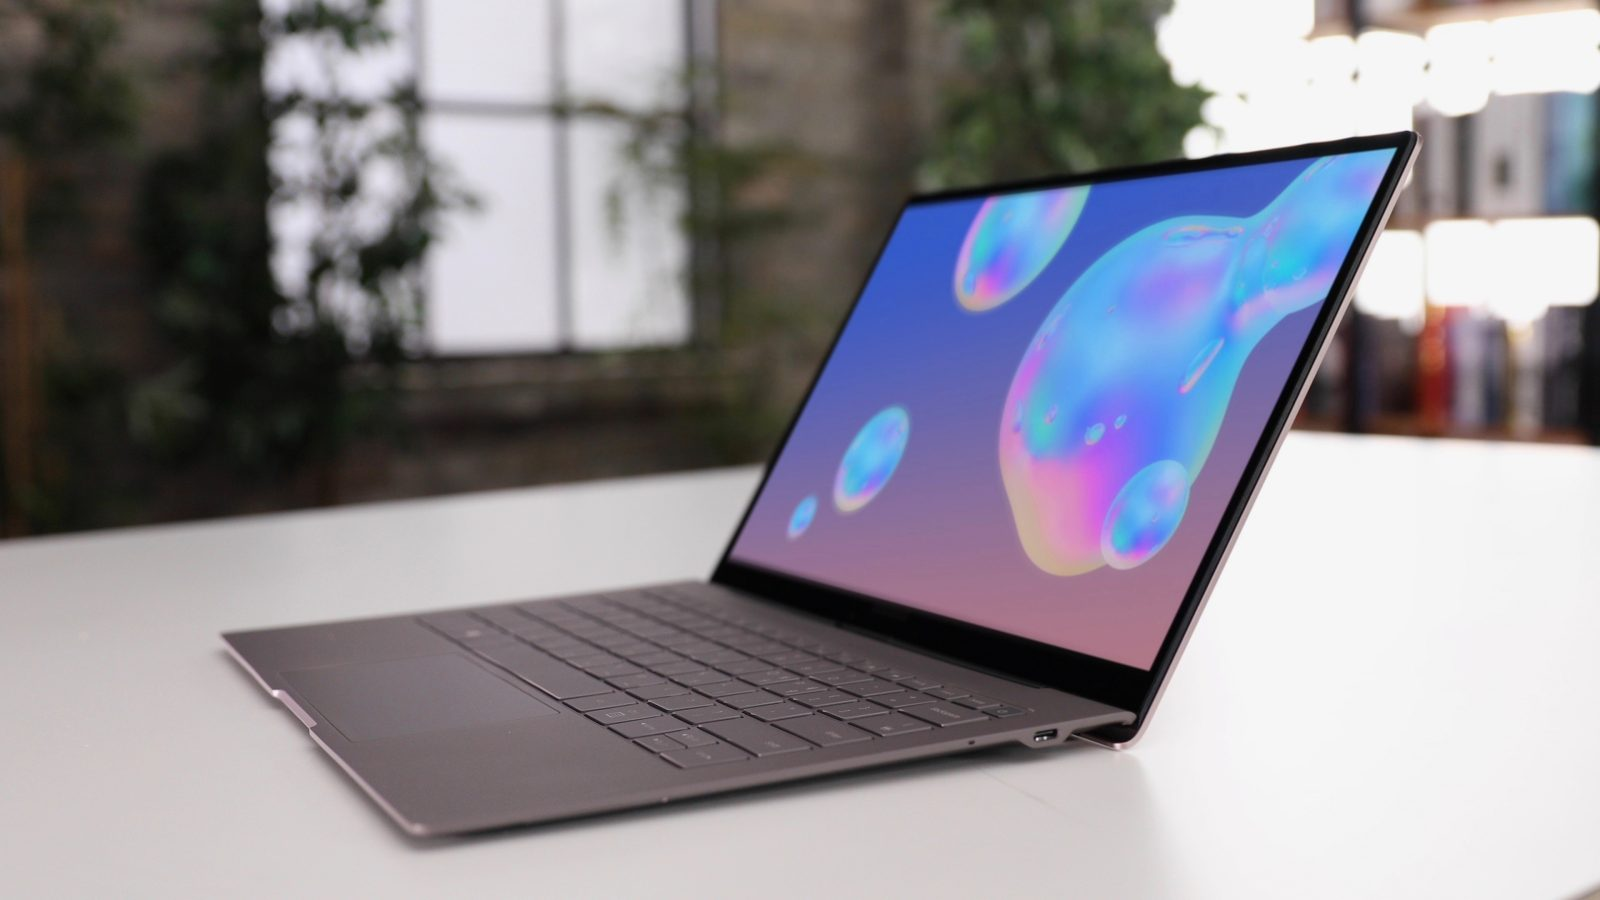 Samsung's Galaxy Book S is an ARM-based MacBook lookalike with LTE, 23-hour battery life, more